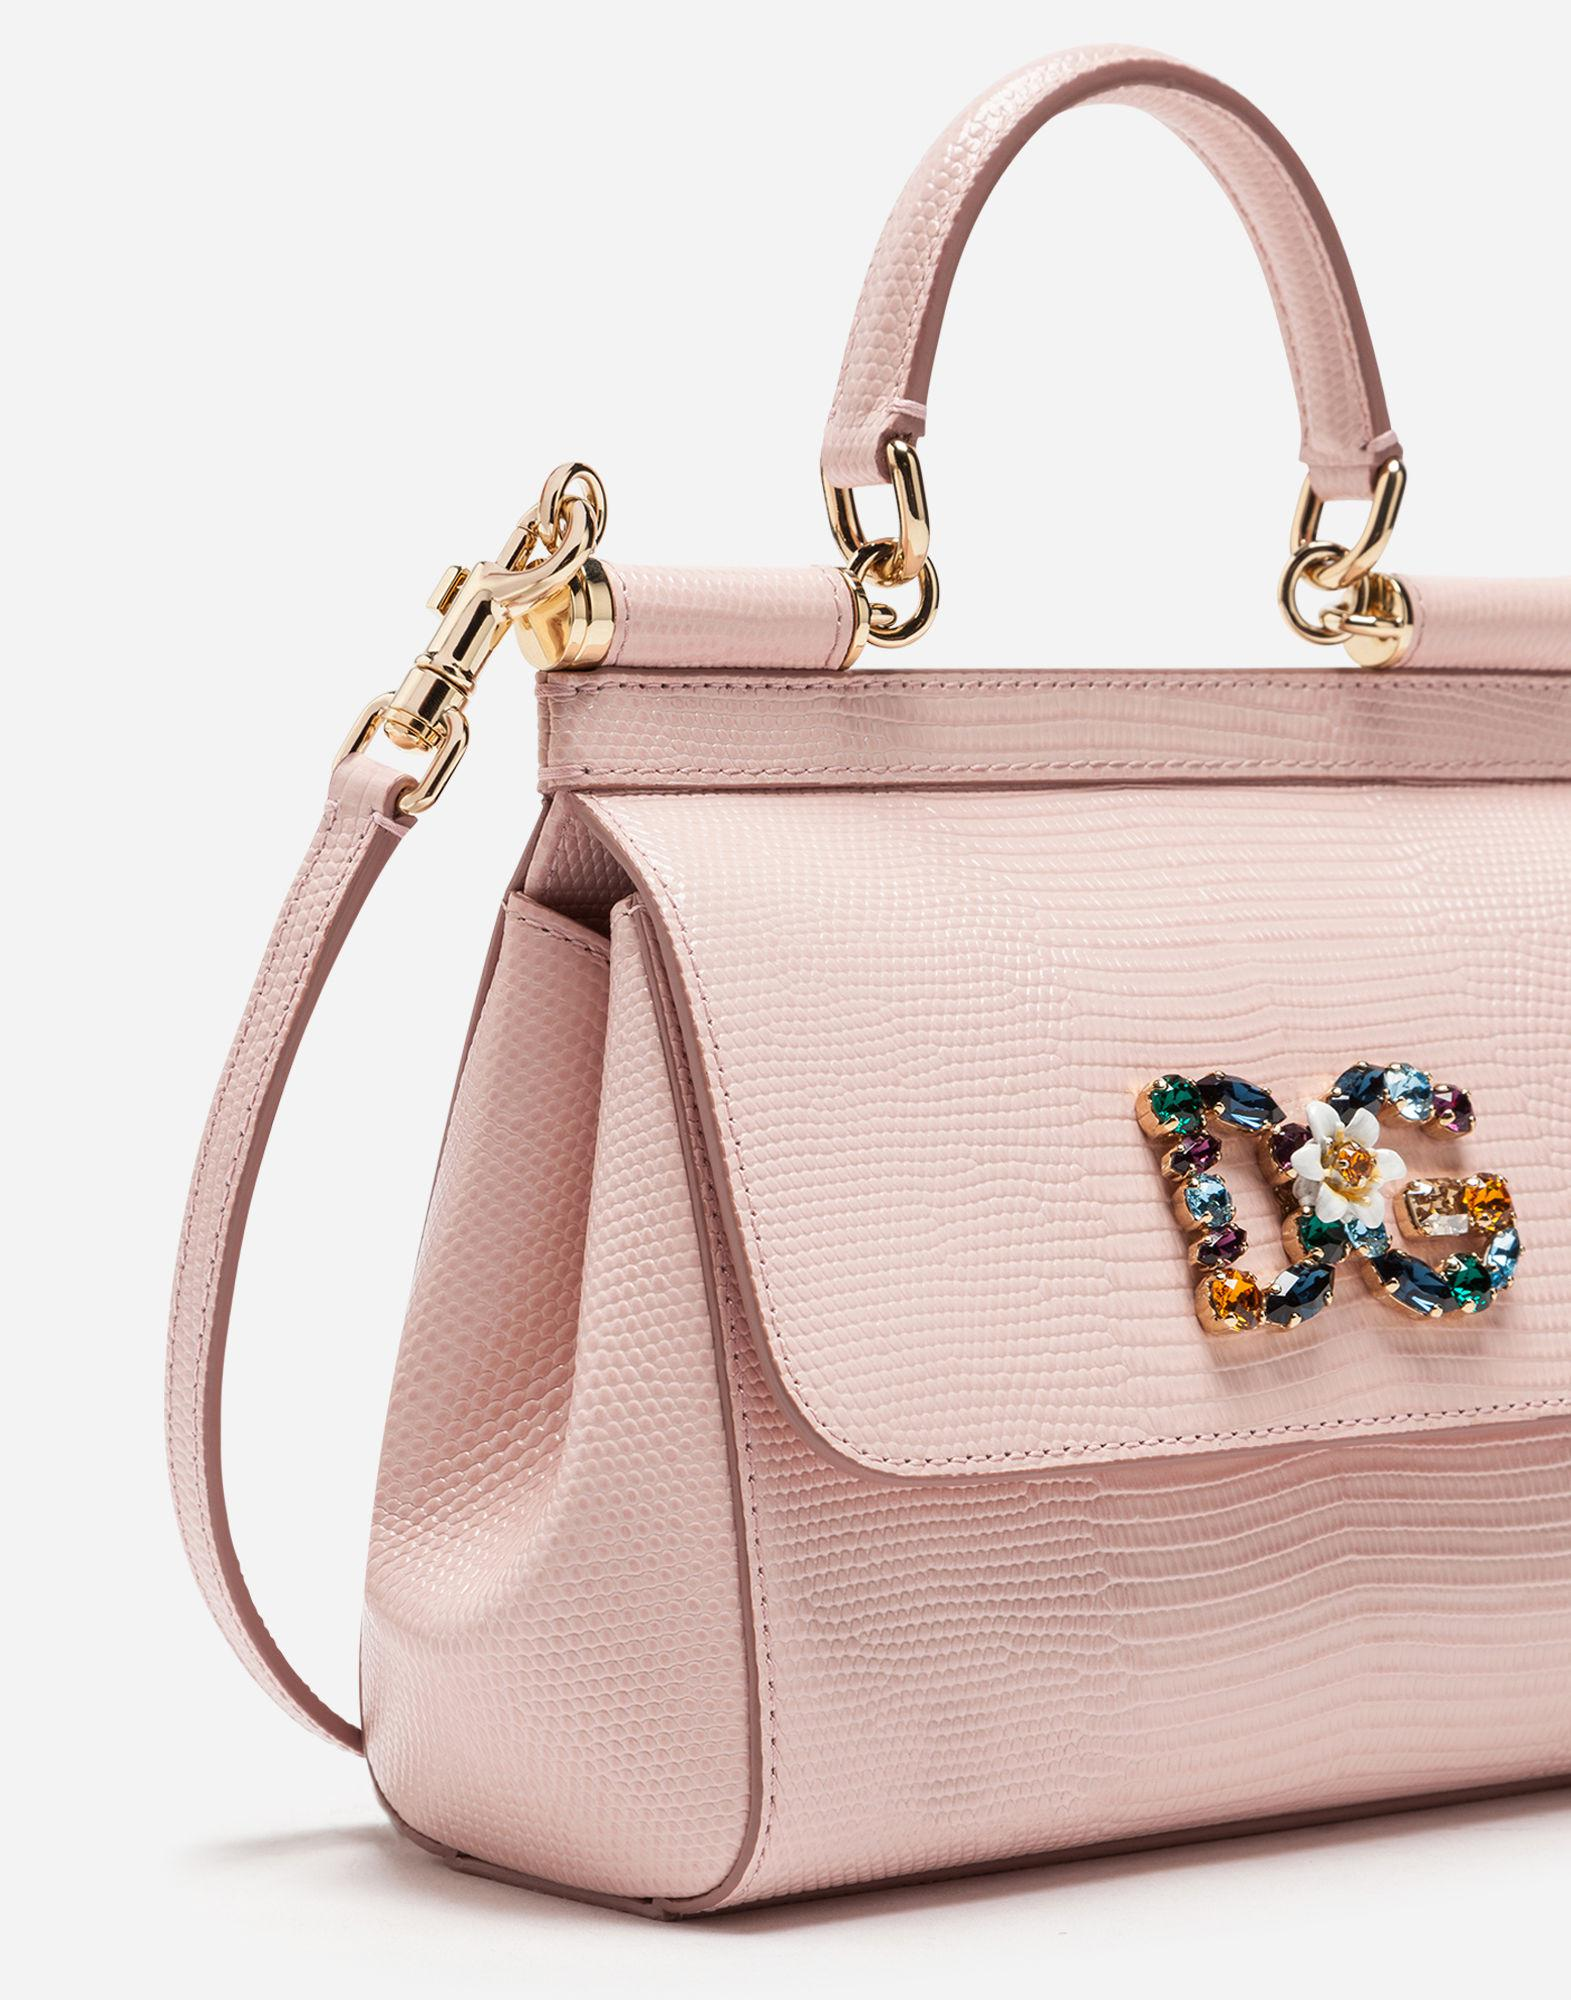 Lyst - Dolce   Gabbana Small Calfskin Sicily Bag With Iguana-print And Dg  Crystal Logo Patch in Pink 62342f121f966